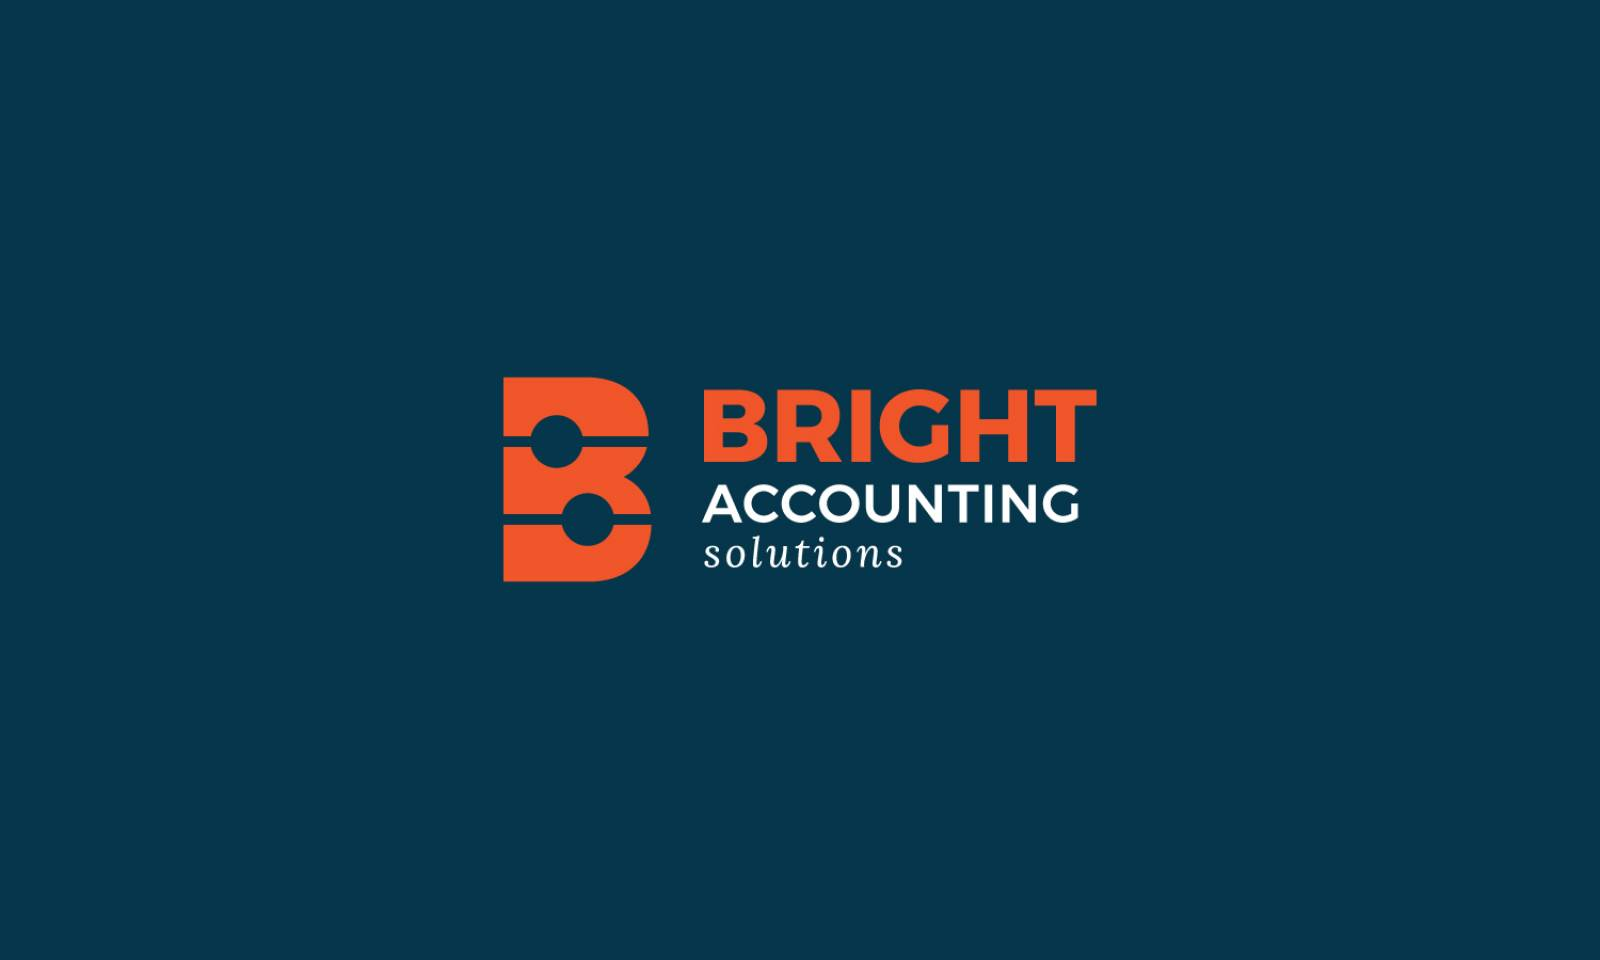 logo-Bright-corporate-identity-agency-graphic-design-canterbury.jpg